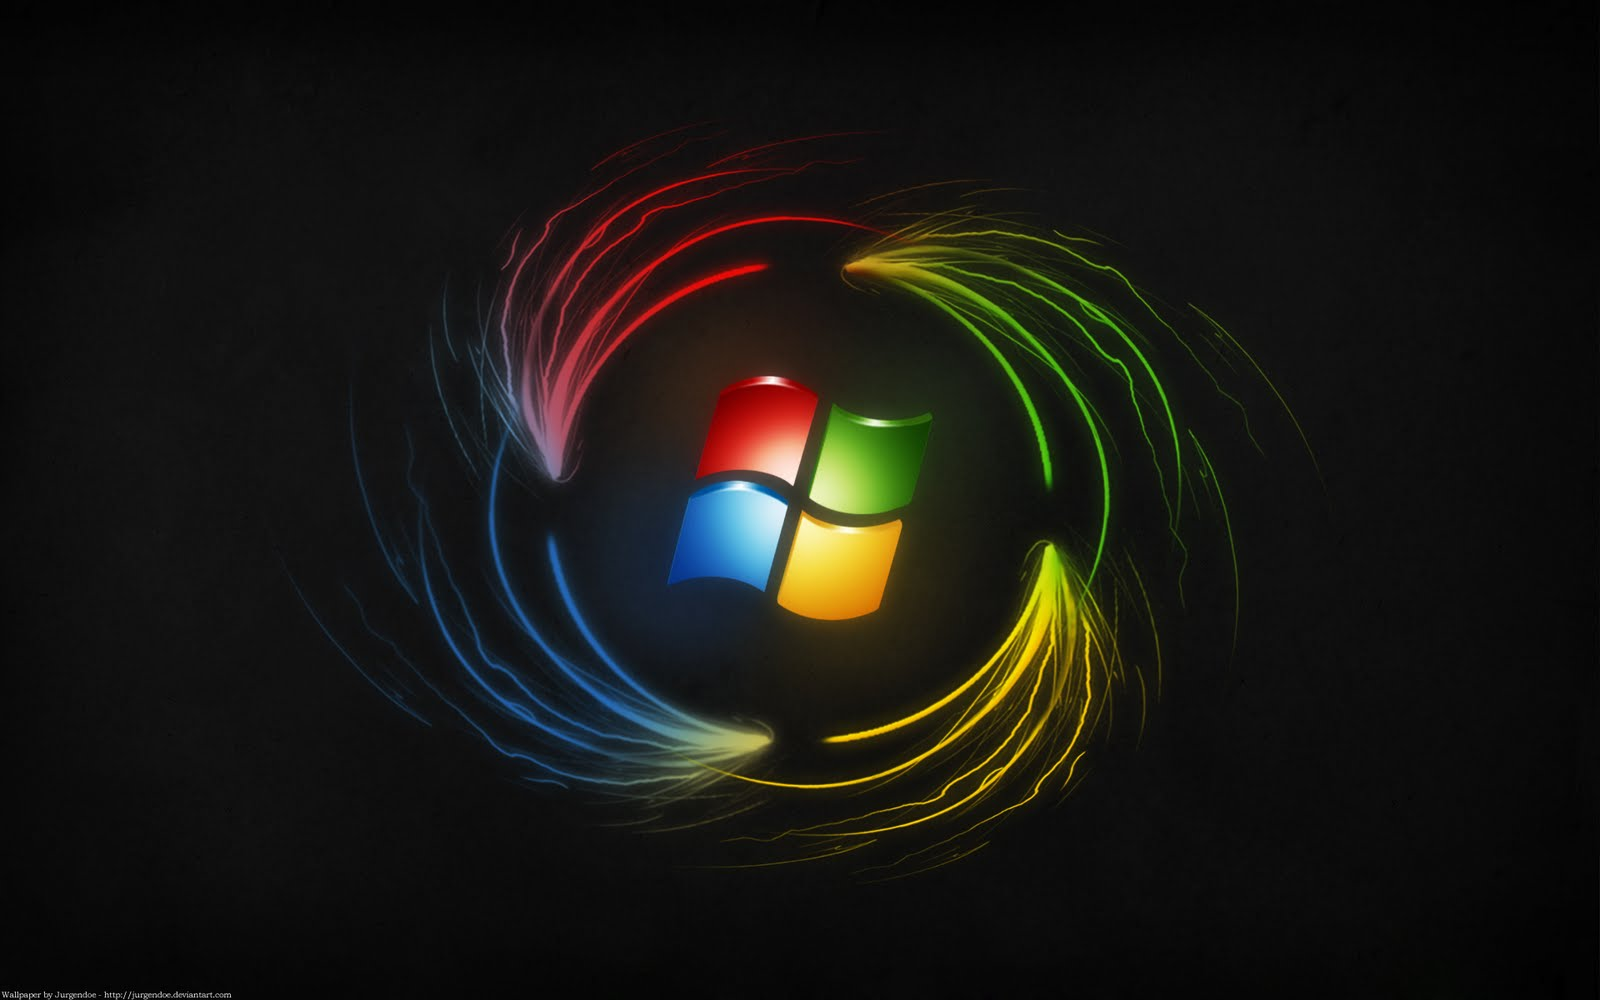 Best Windows 8 Wallpaper1 600x375 1600x1000